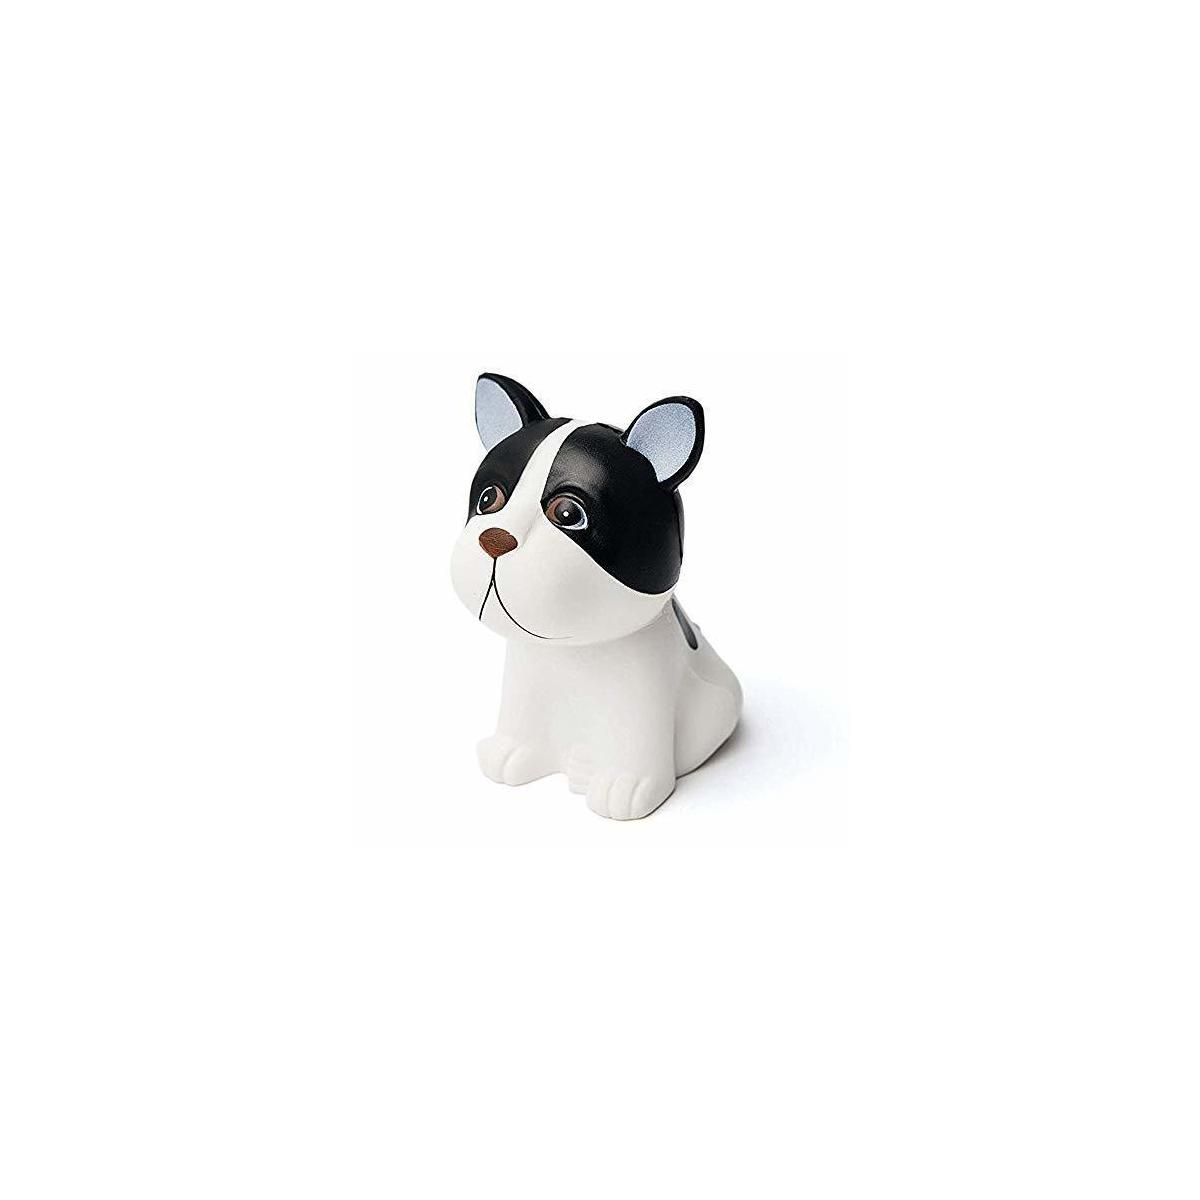 Banyan Pacific Dog Squishy Toy Made Of Slow Rising, Soft Squishie Material, Ideal As Stress Relief Toys Or Favor Bag Fillers (Black And White Squishy Dog Design)